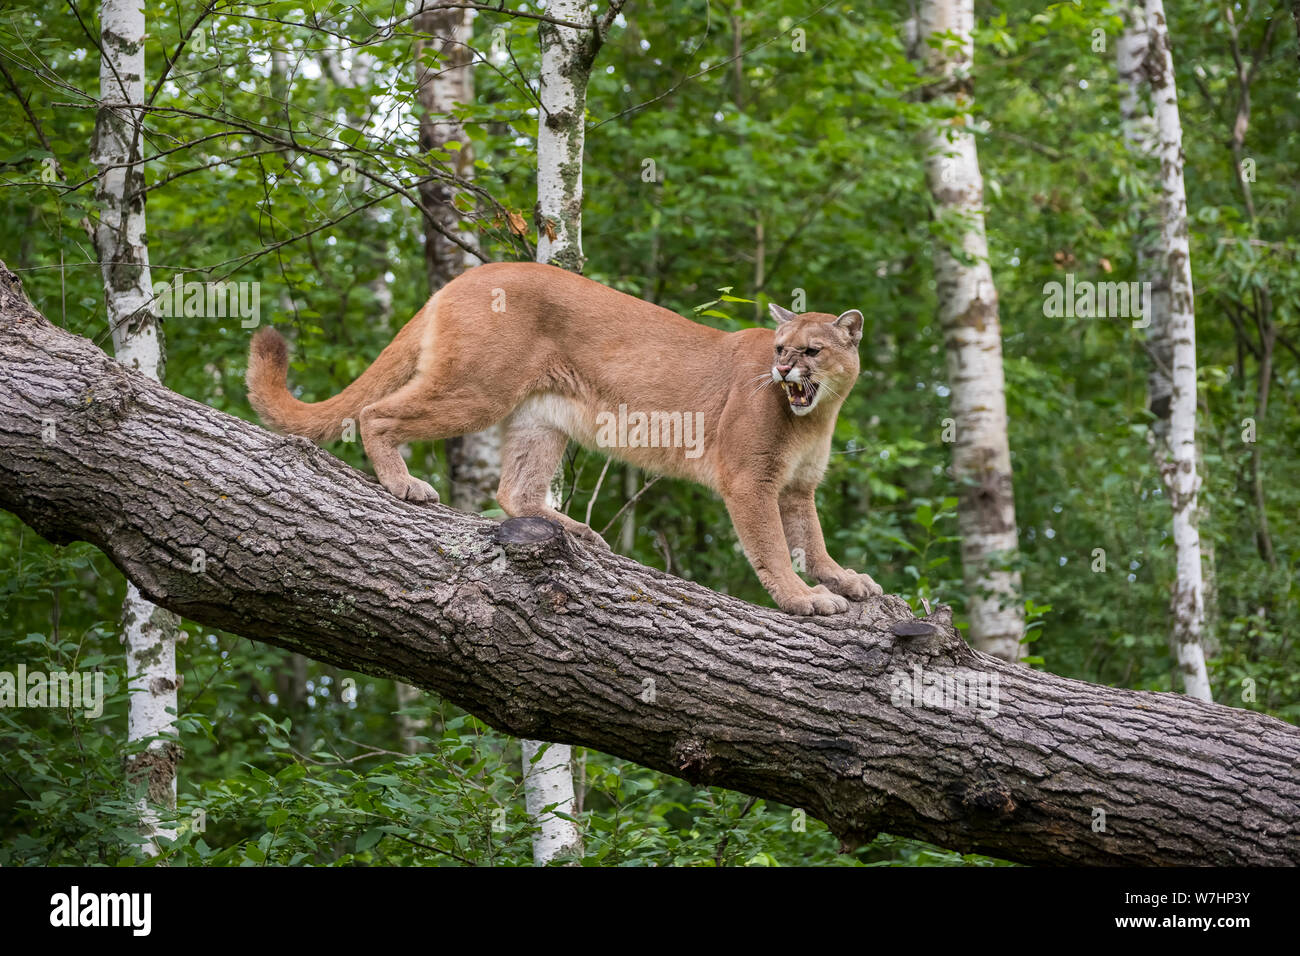 Snarling Mountain Lion climbing Down a Leaning Tree Stock Photo